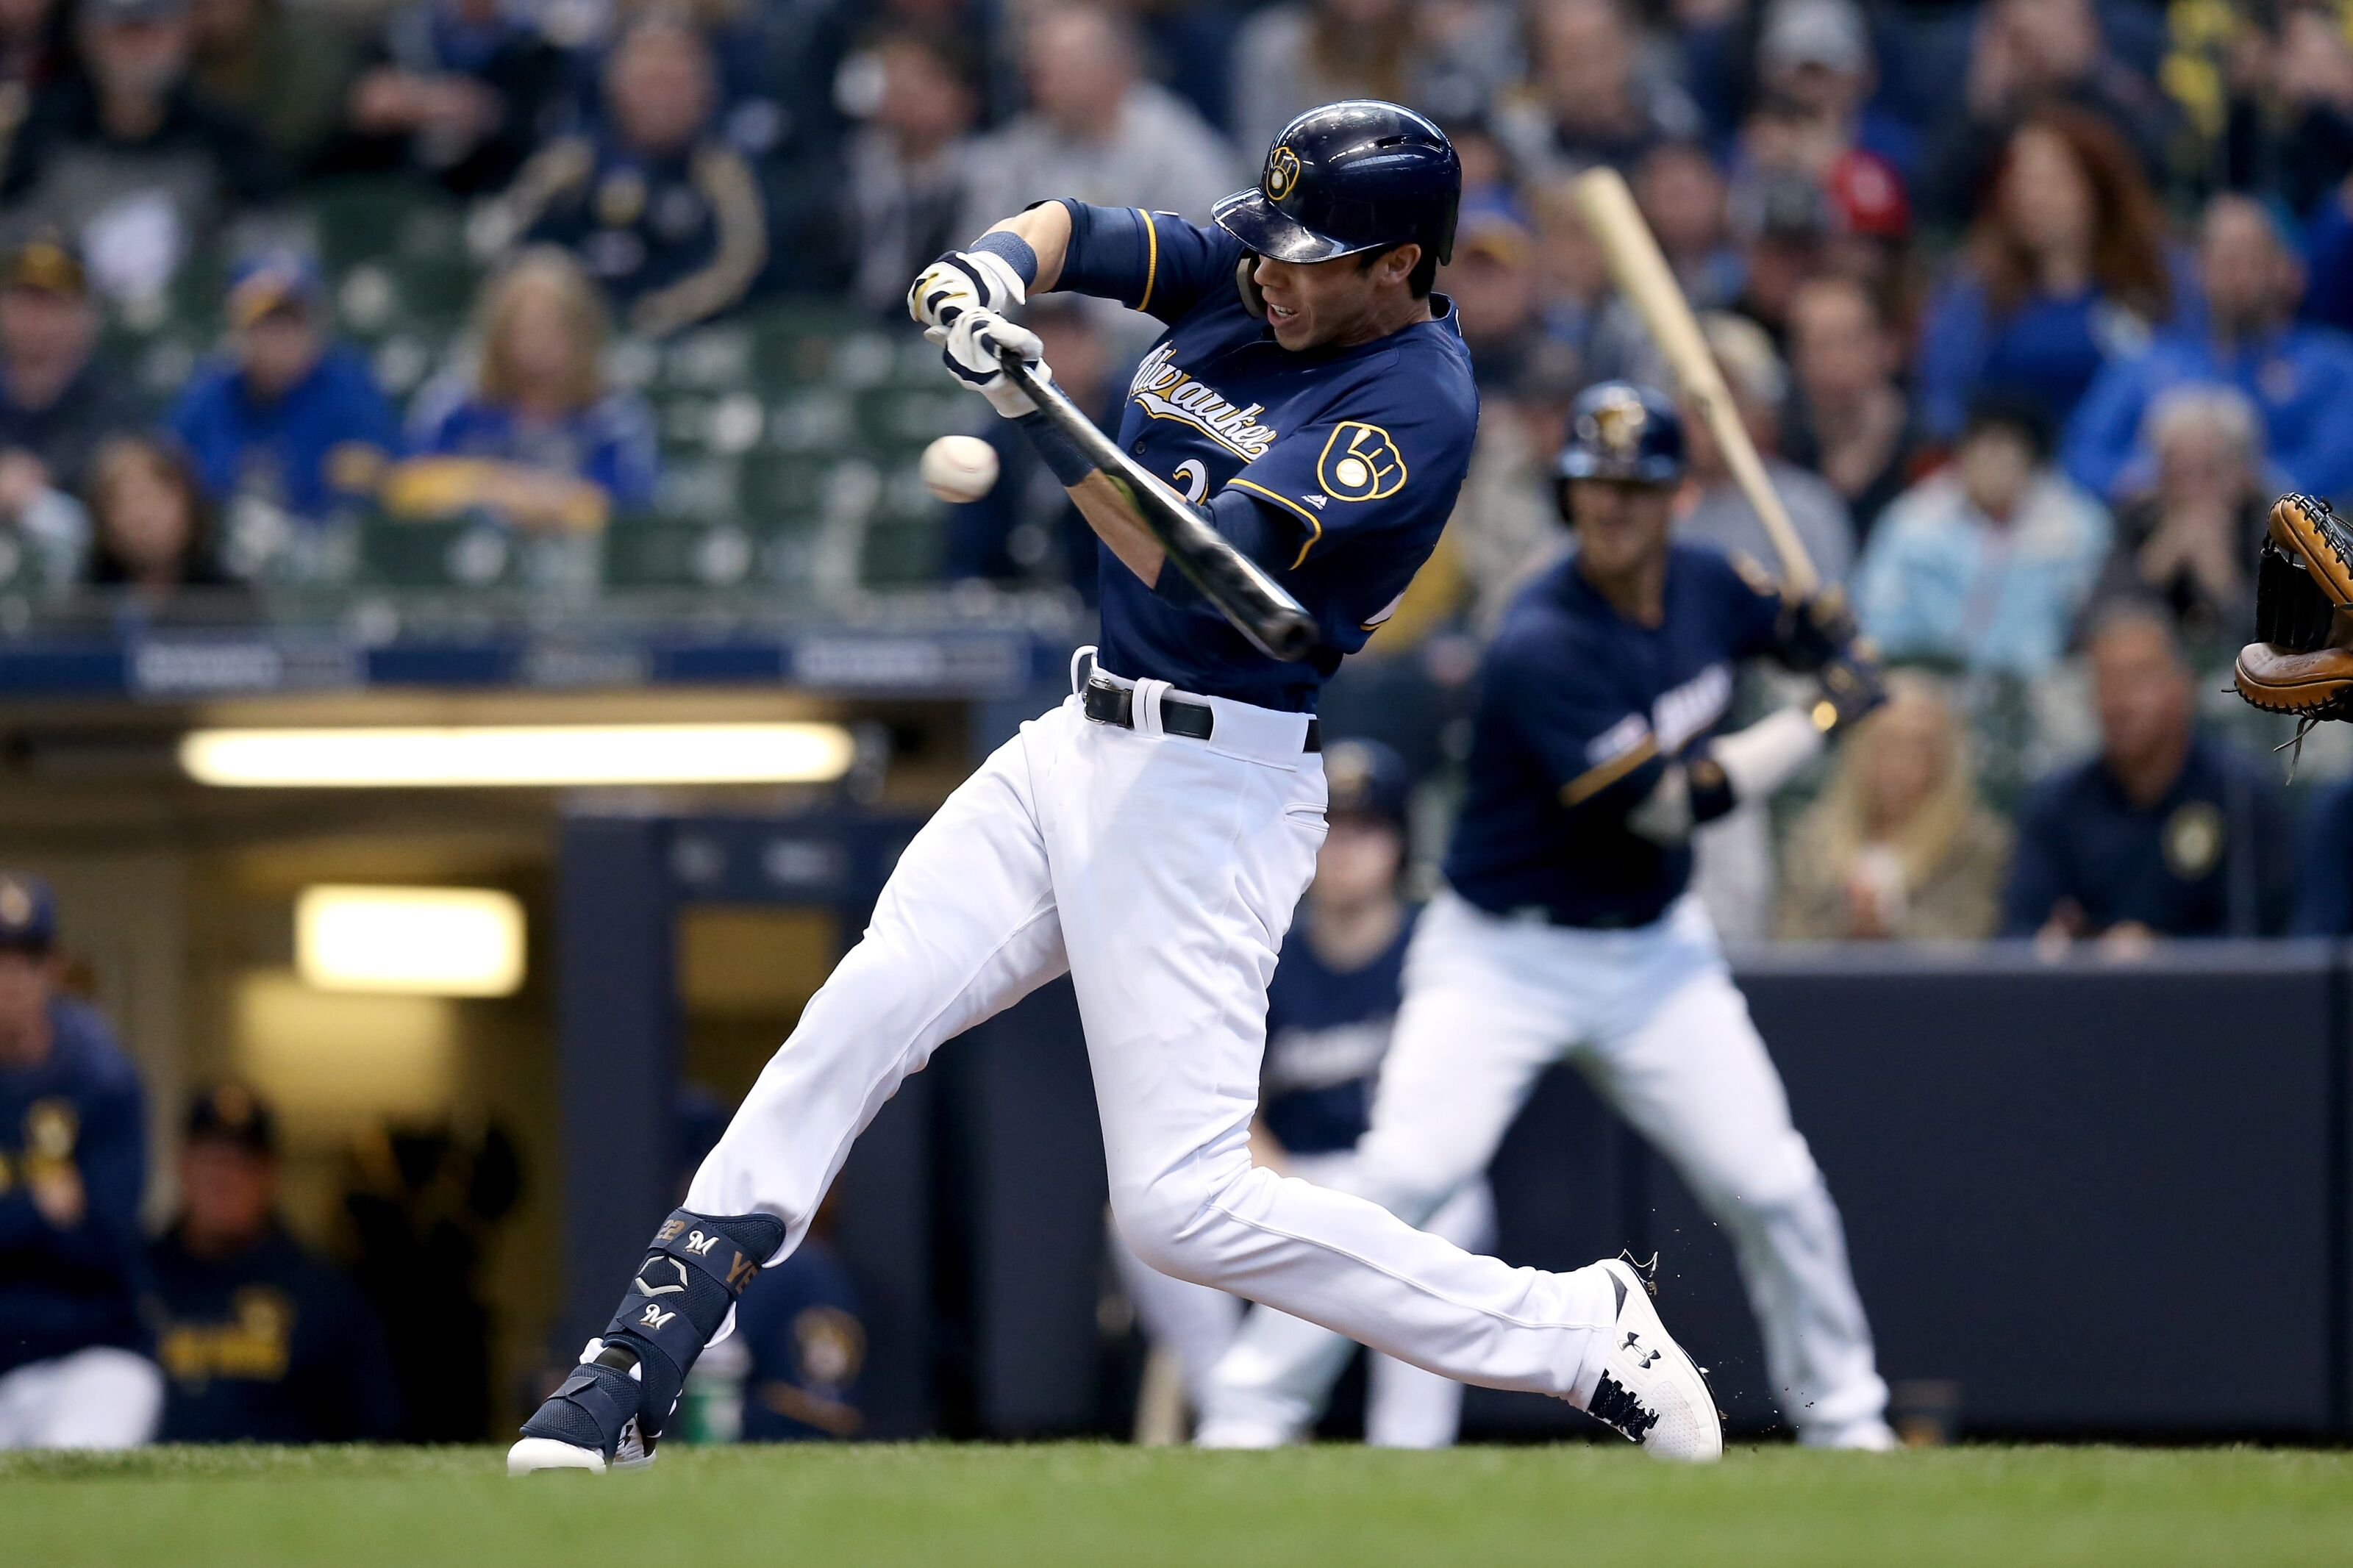 Brewers: Christian Yelich's challenge for the Throne